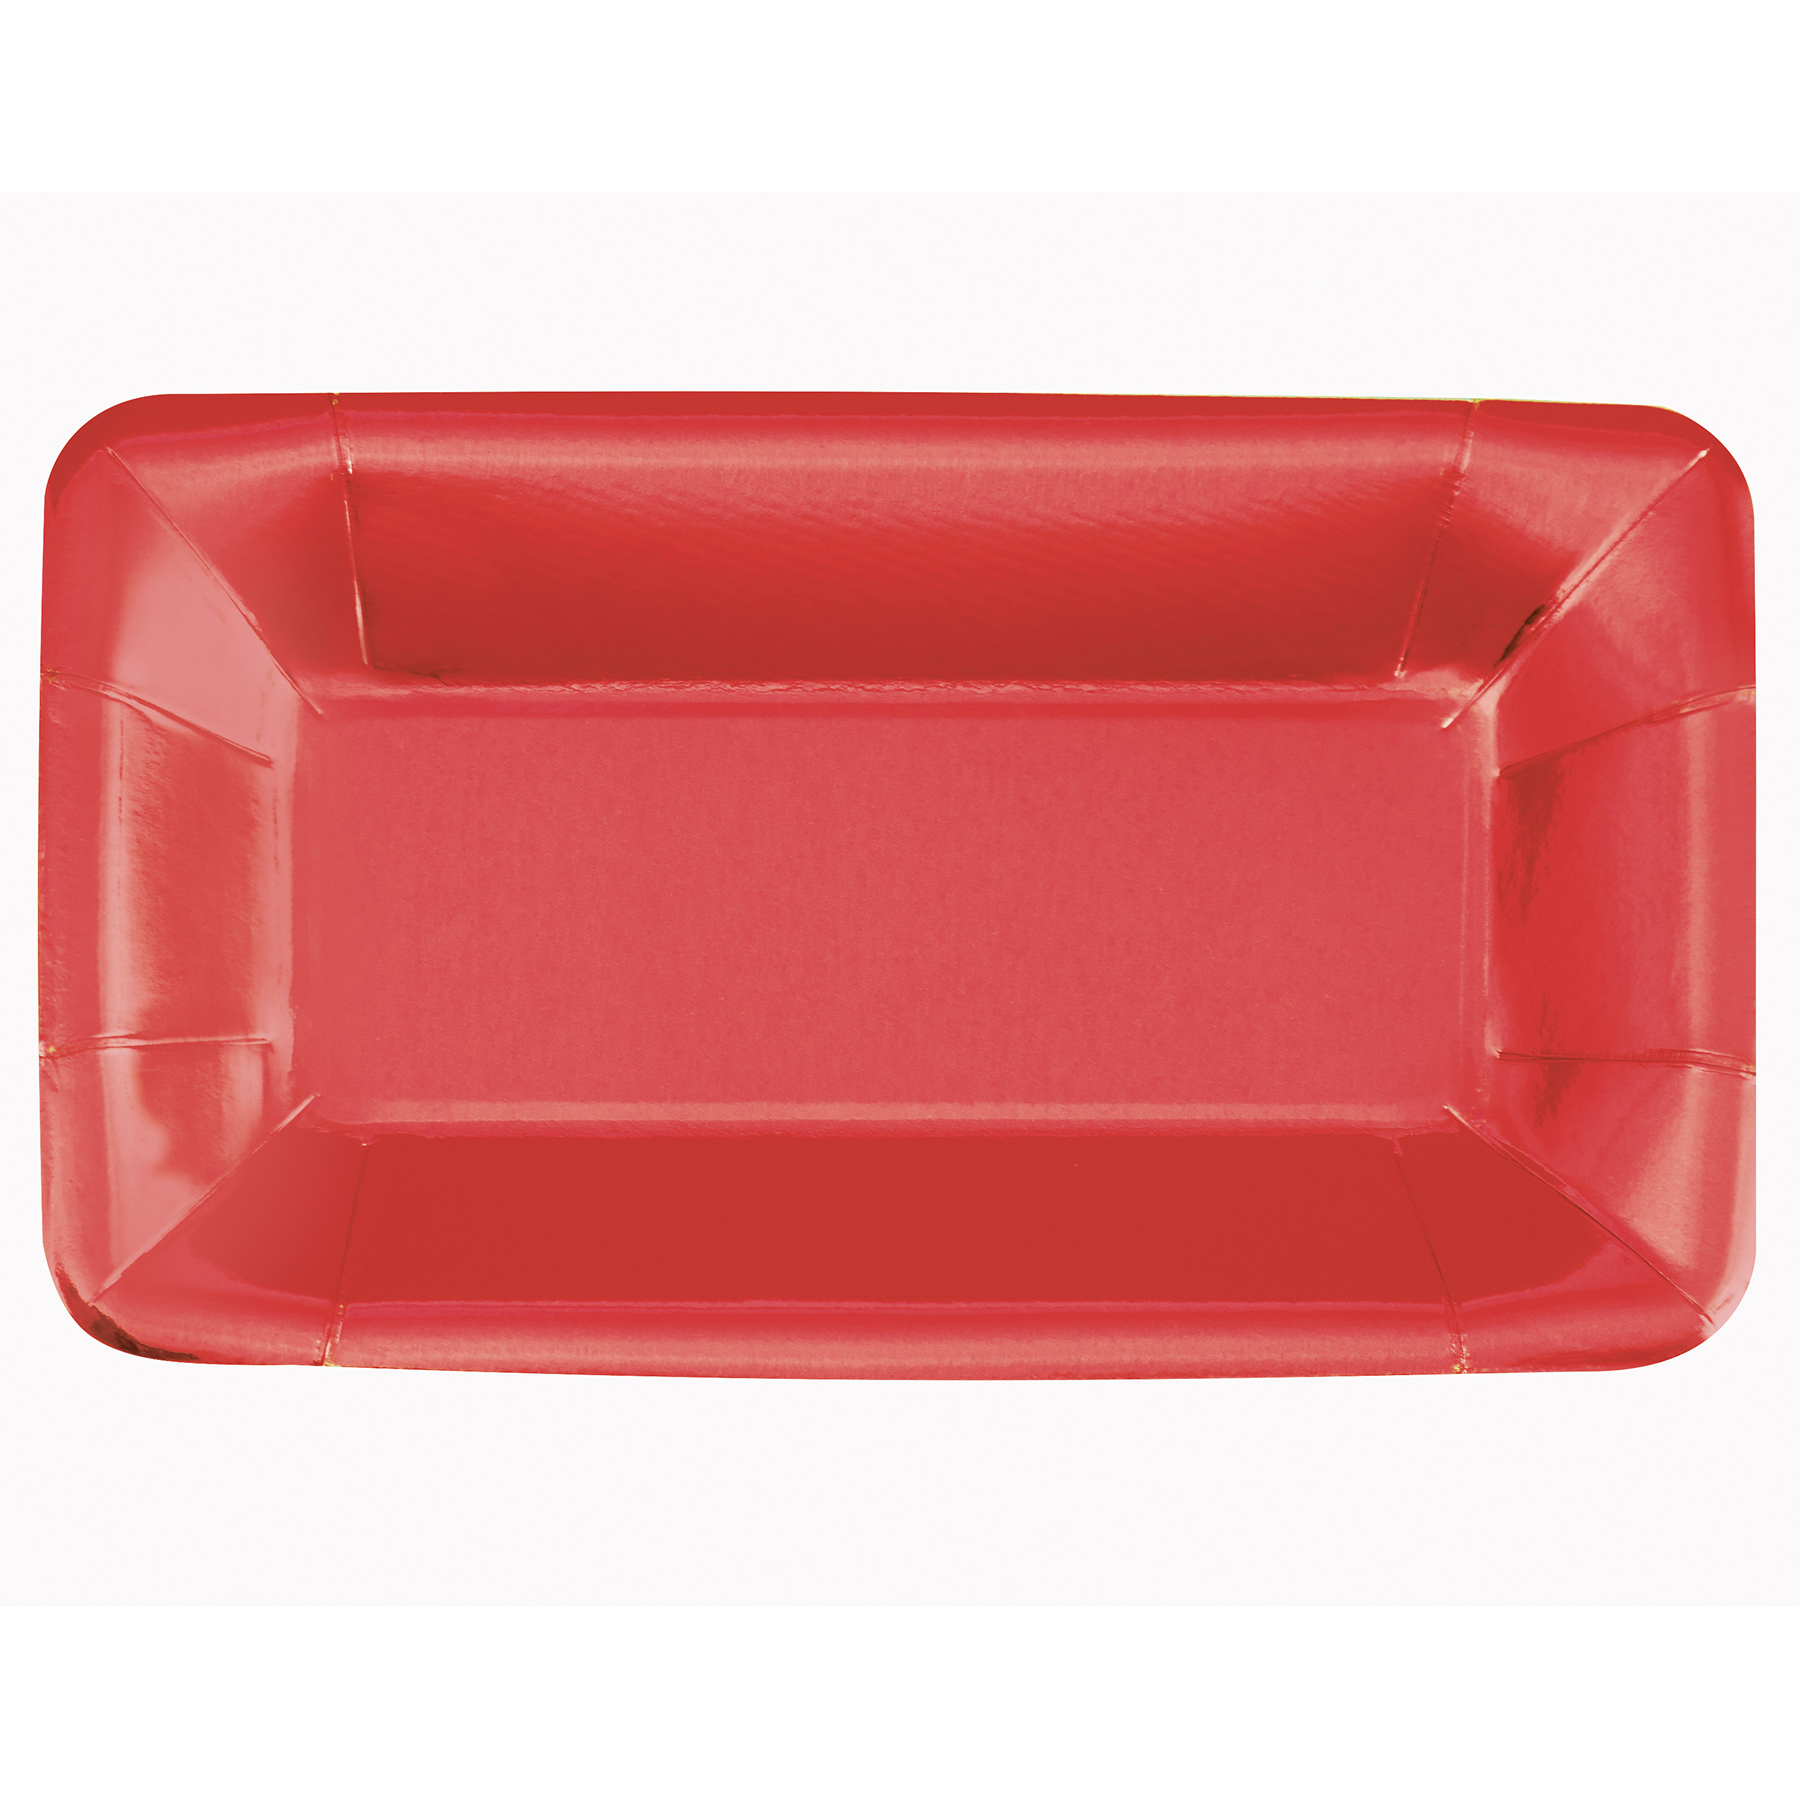 Foil Red Rectangular Paper Appetizer Plates 8ct  sc 1 st  Michaels Stores & Foil Red Rectangular Paper Plates | Red Party Supplies